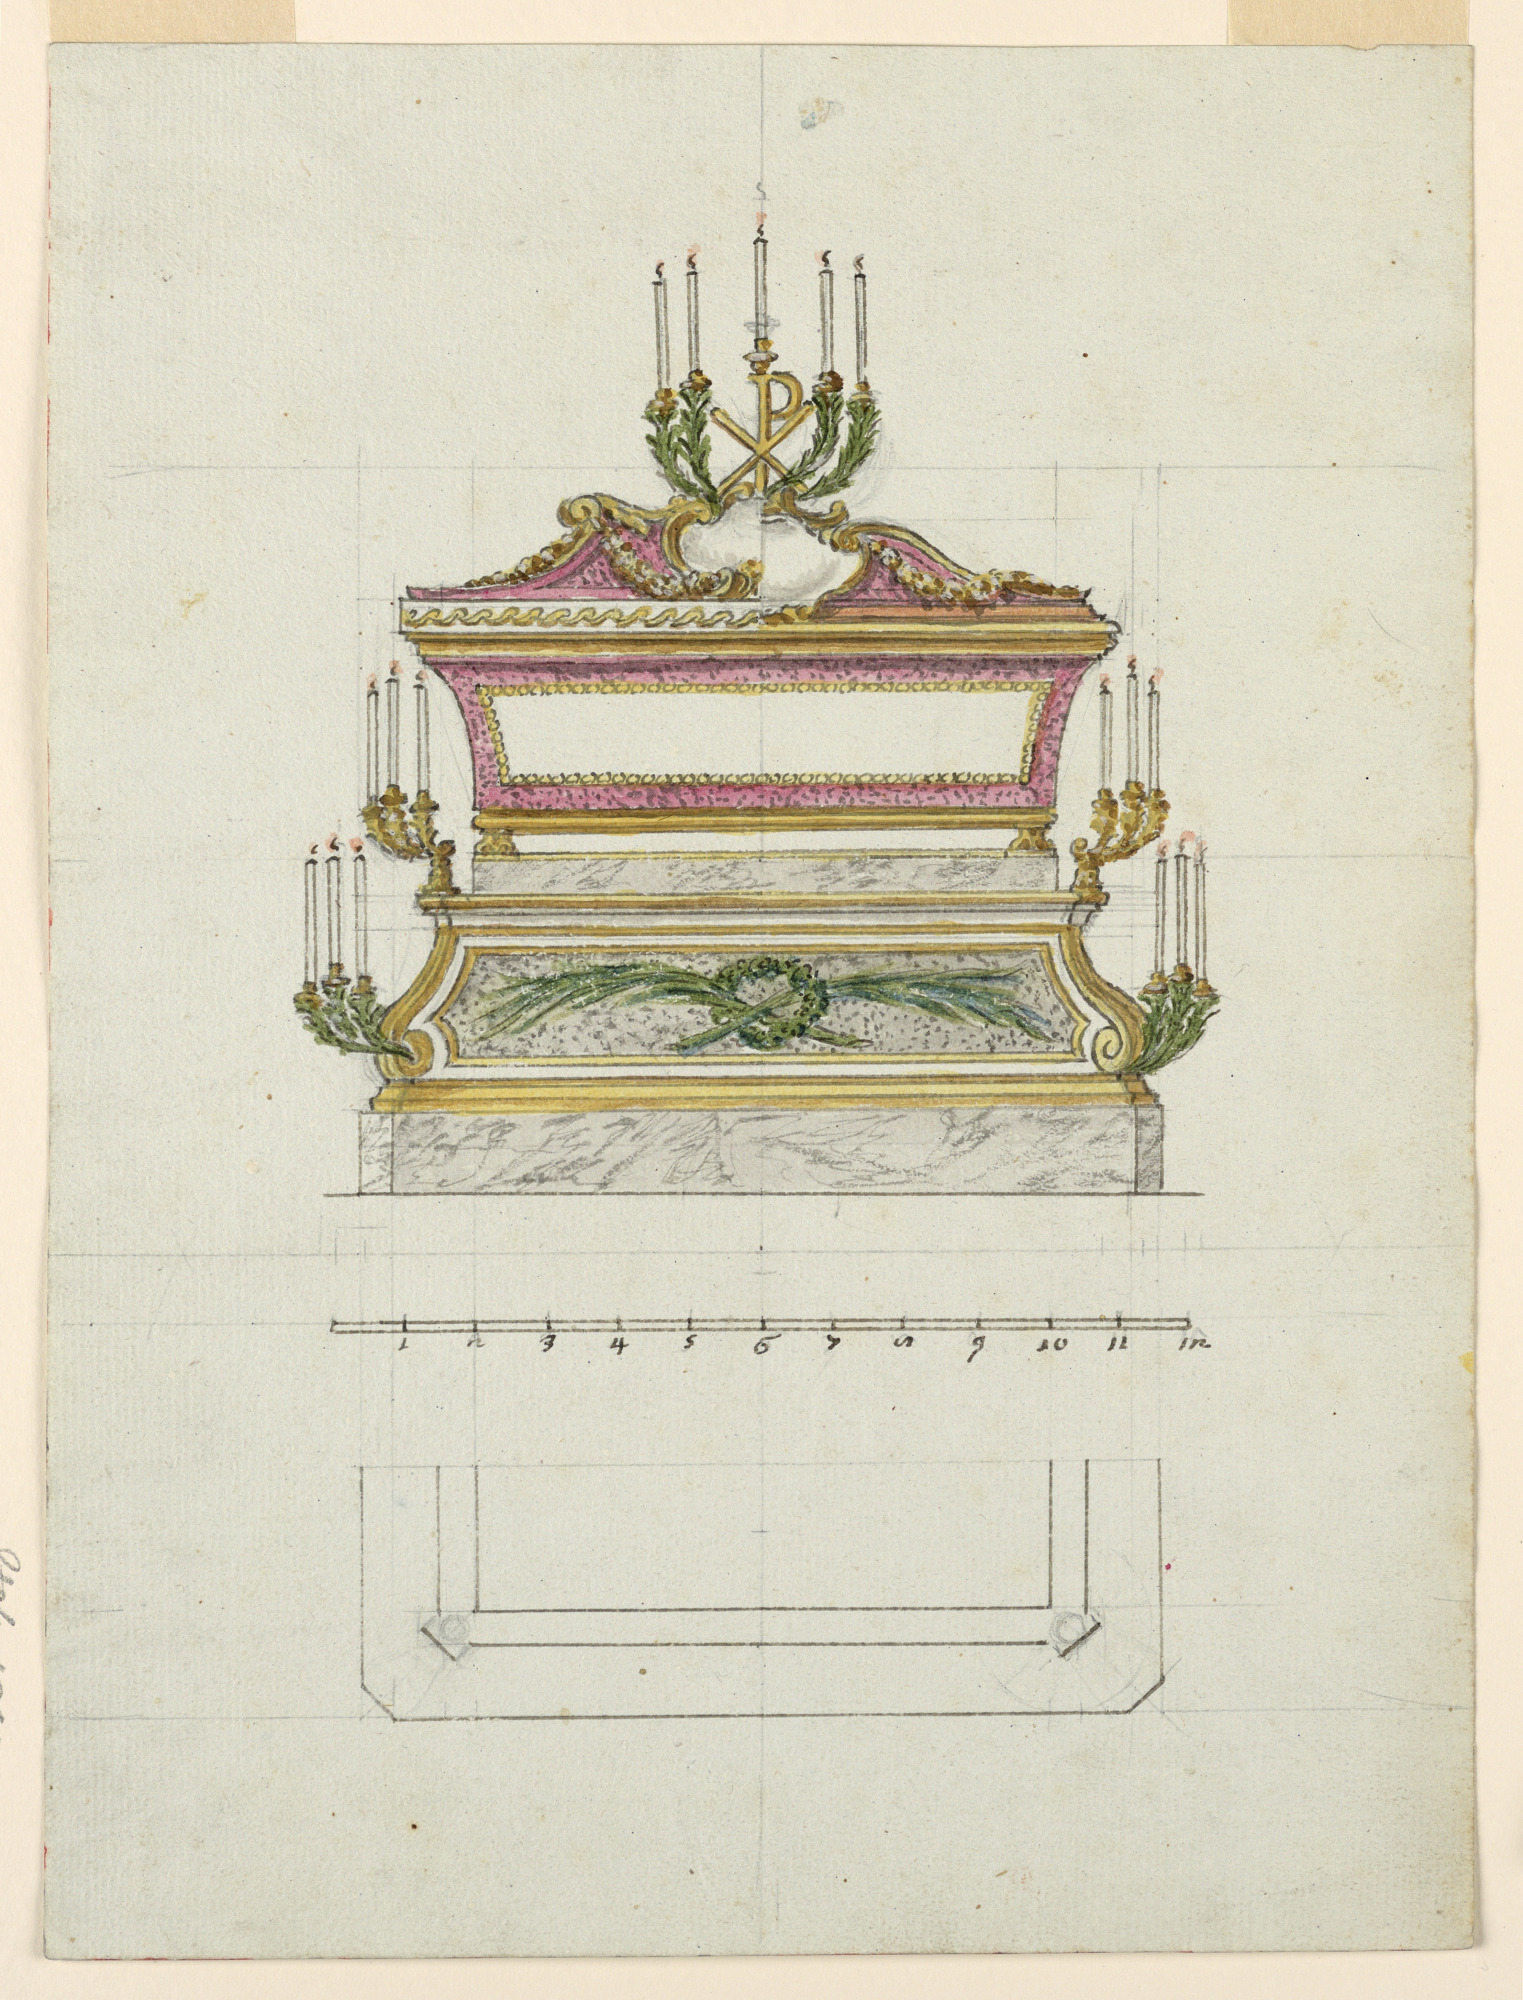 Design for a Reliquary Sarcophagus